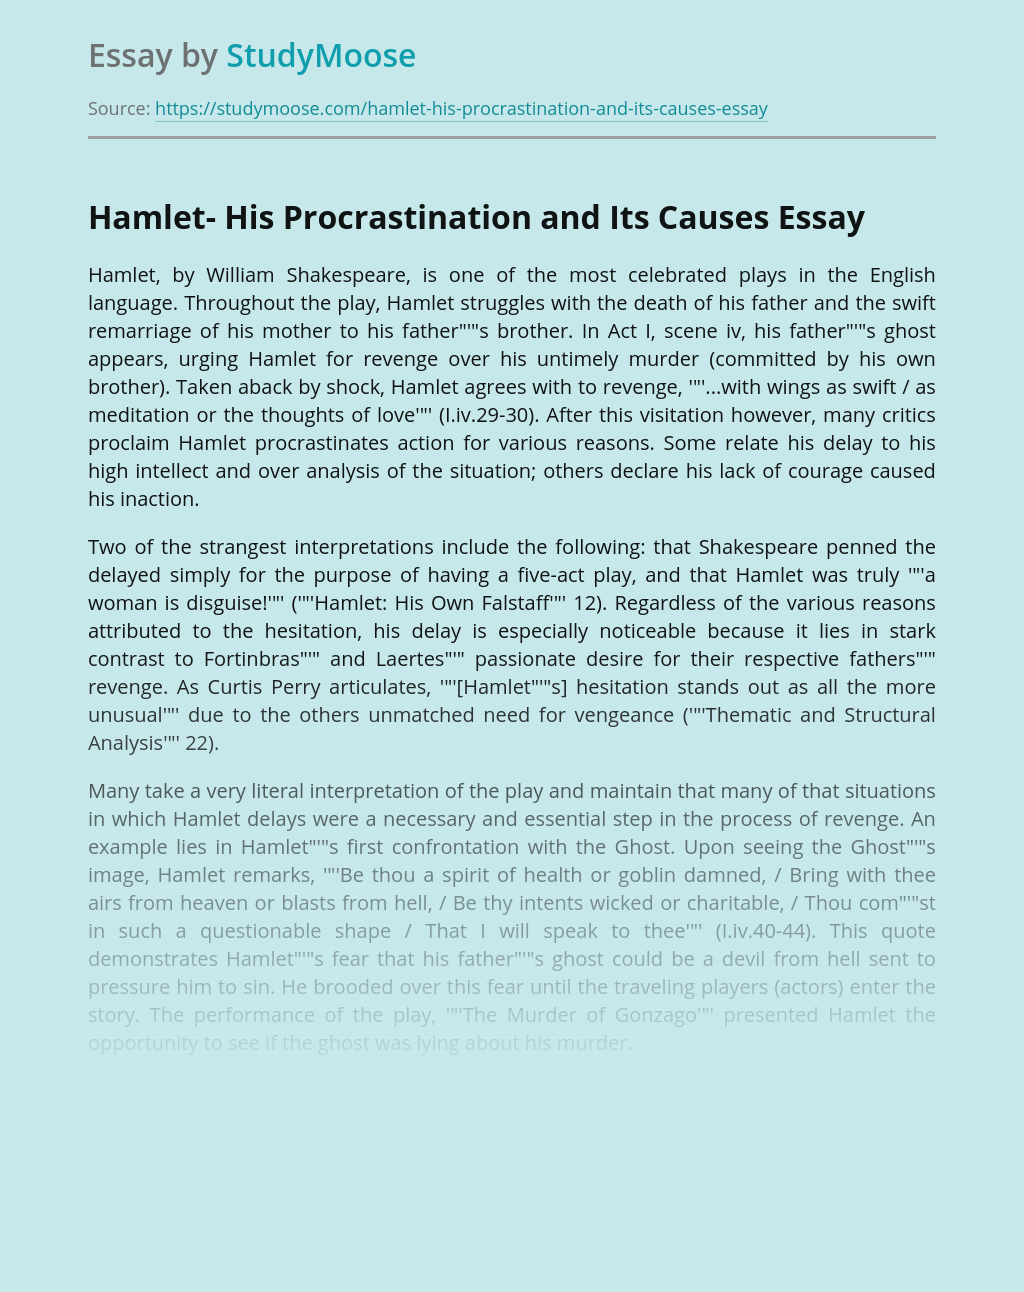 Hamlet- His Procrastination and Its Causes